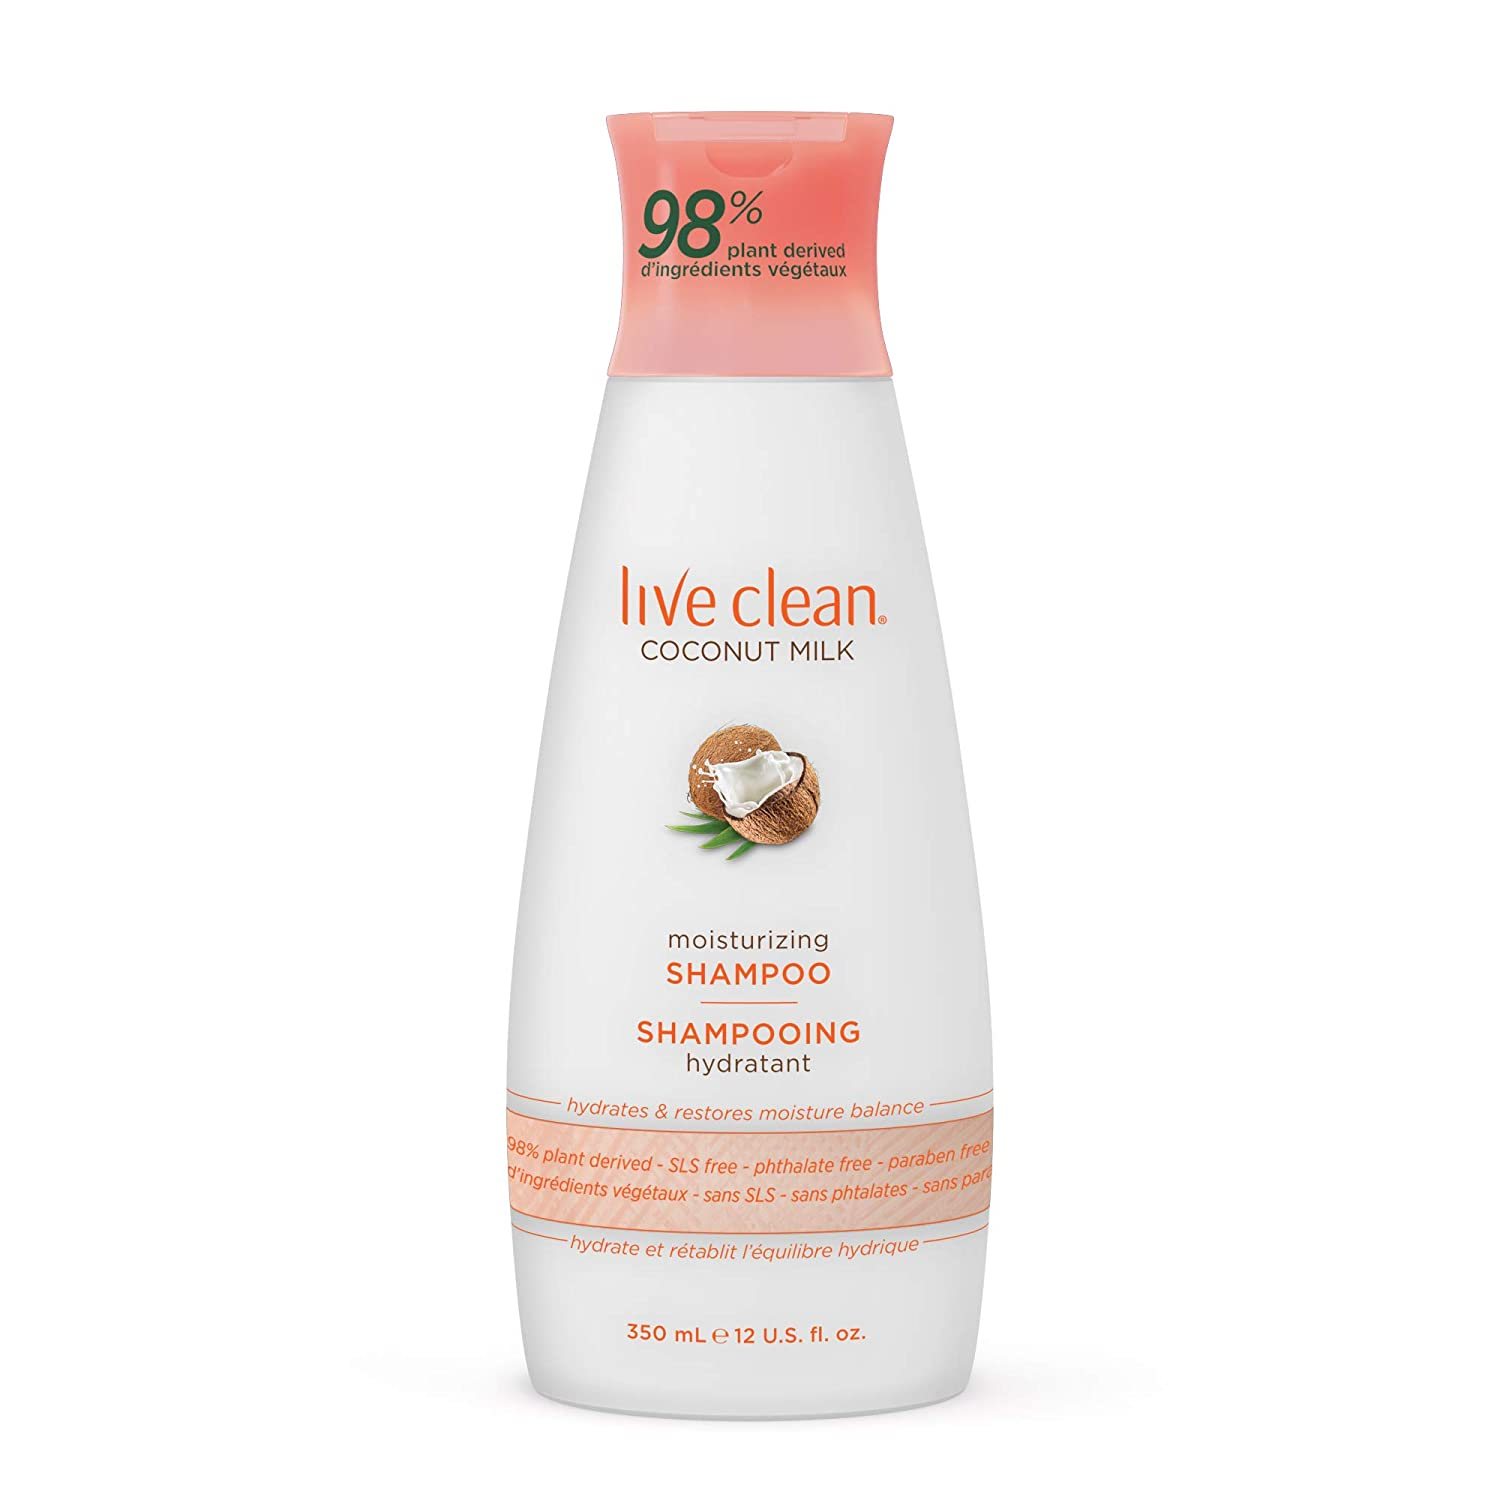 Live Clean Coconut Milk Moisturizing Shampoo, 12 oz.